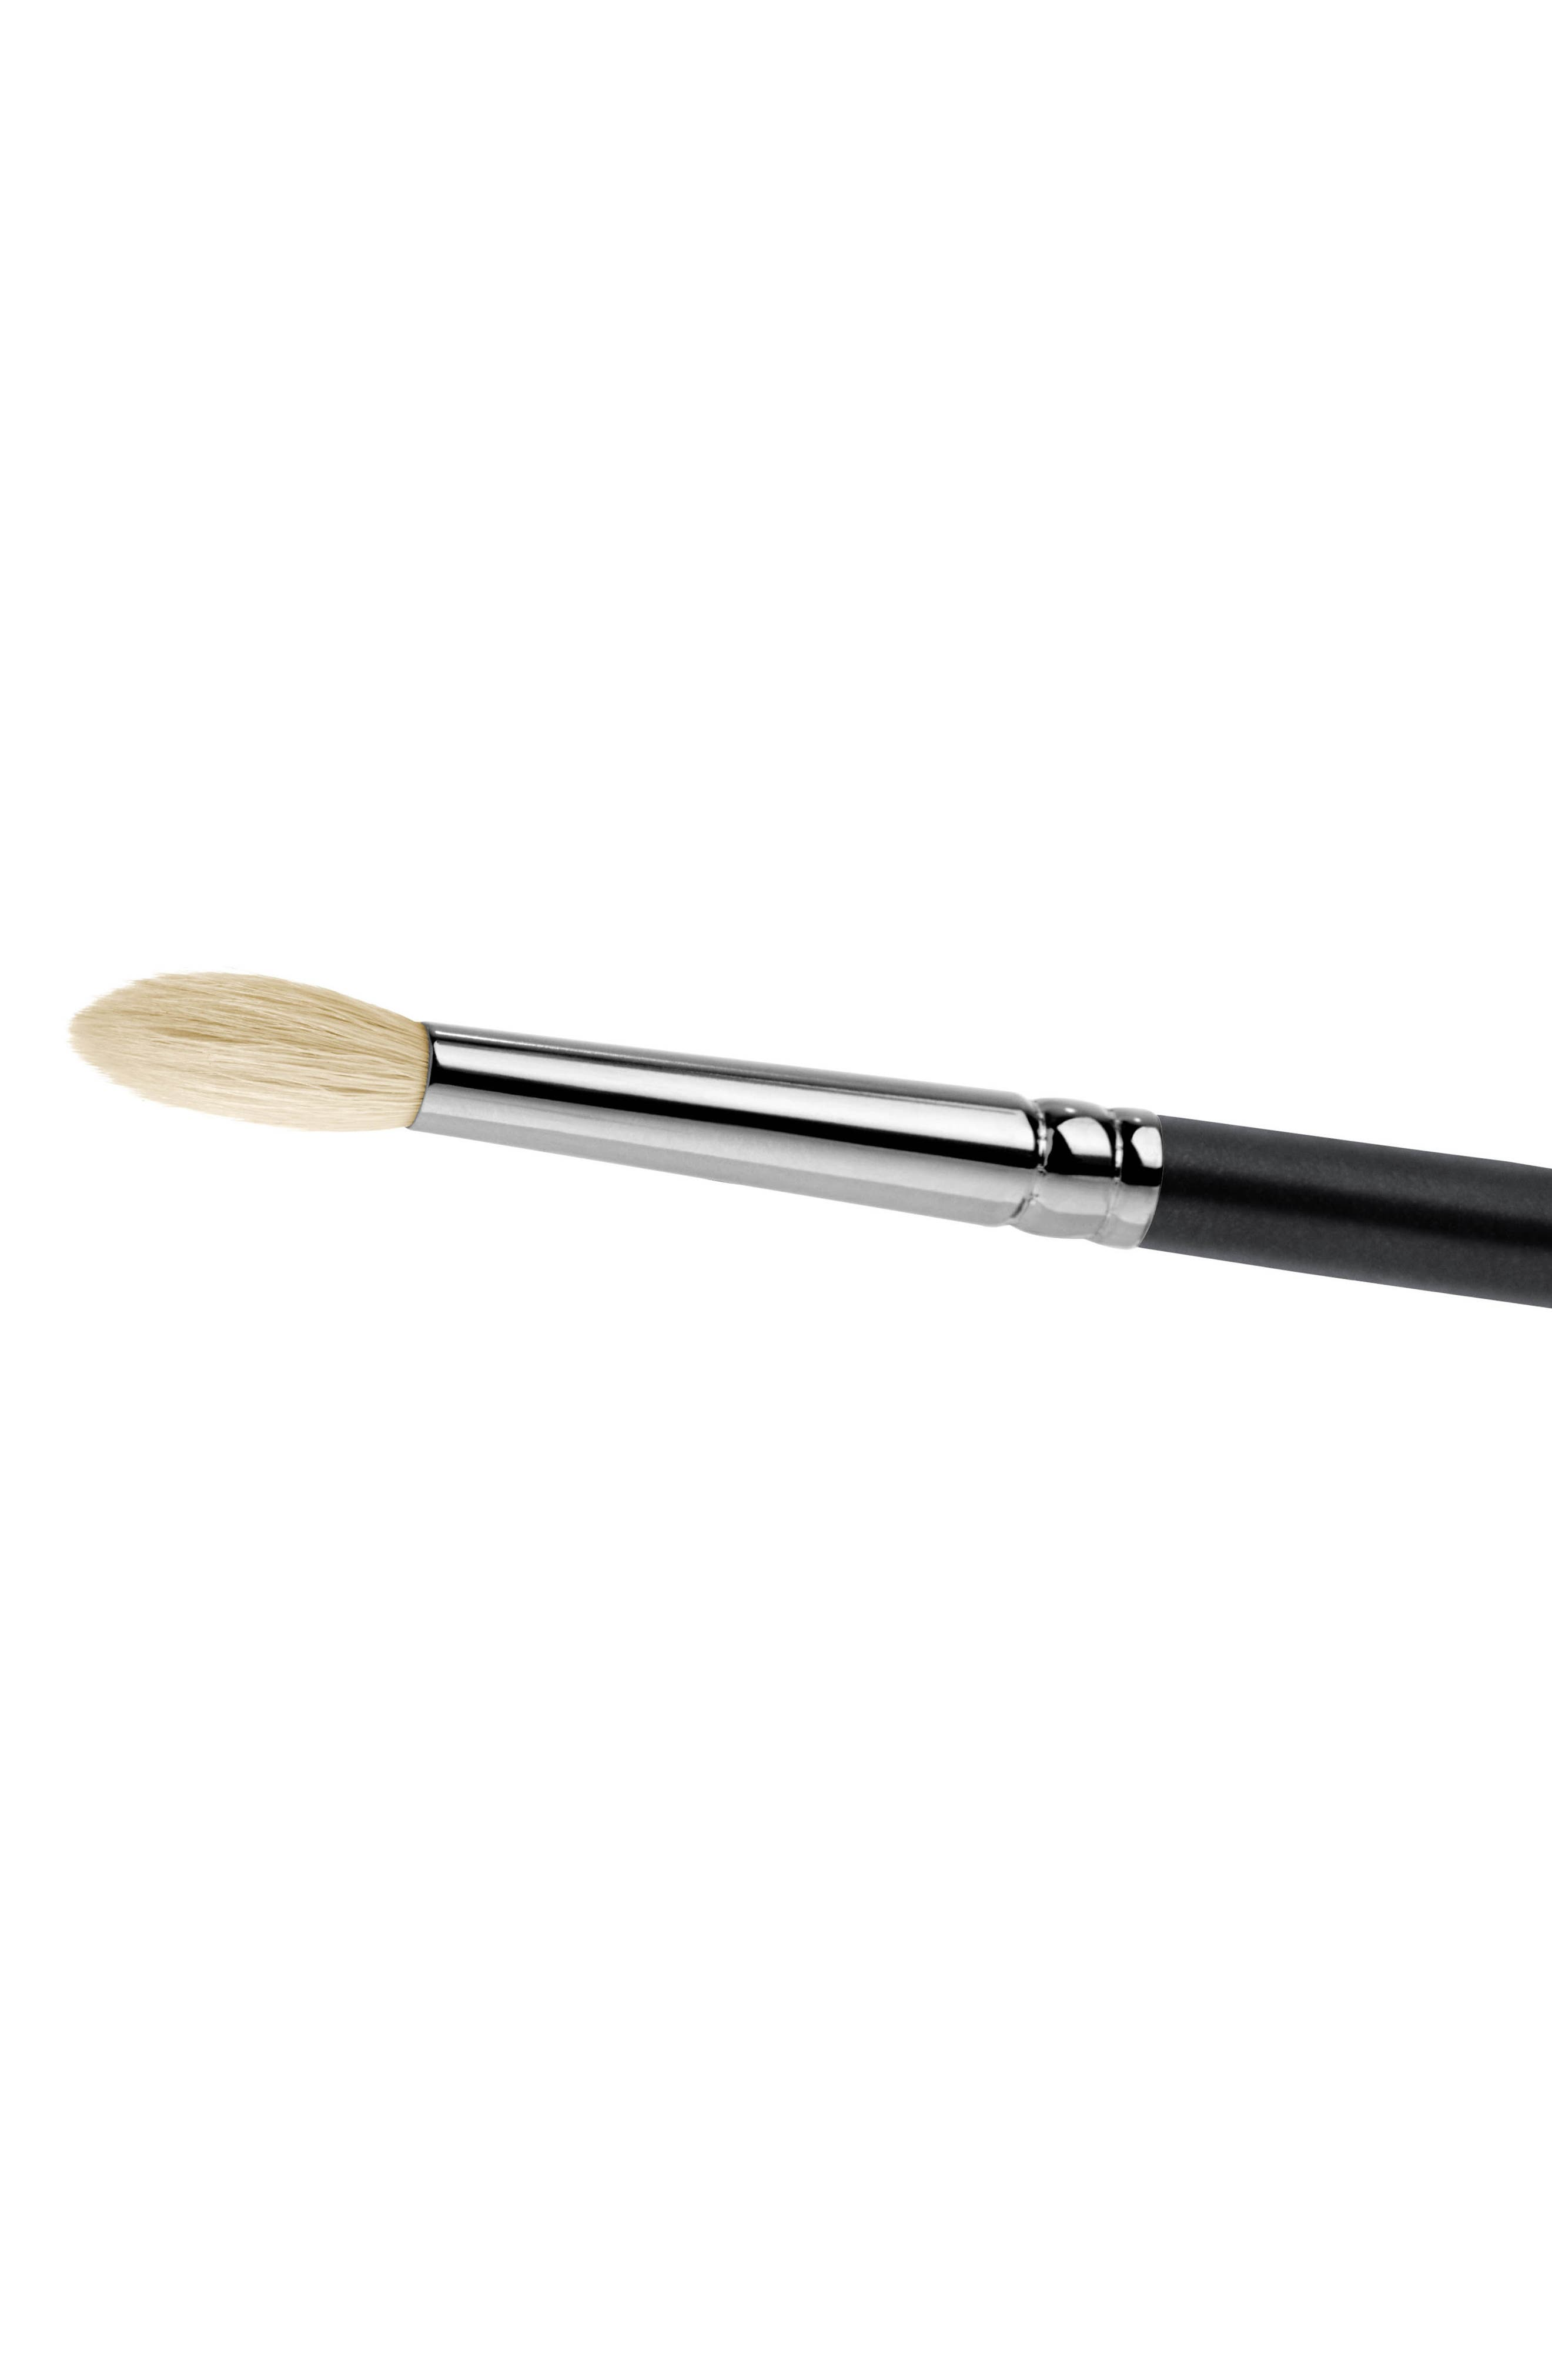 MAC 221S Synthetic Mini Tapered Blending Brush,                             Alternate thumbnail 2, color,                             No Color